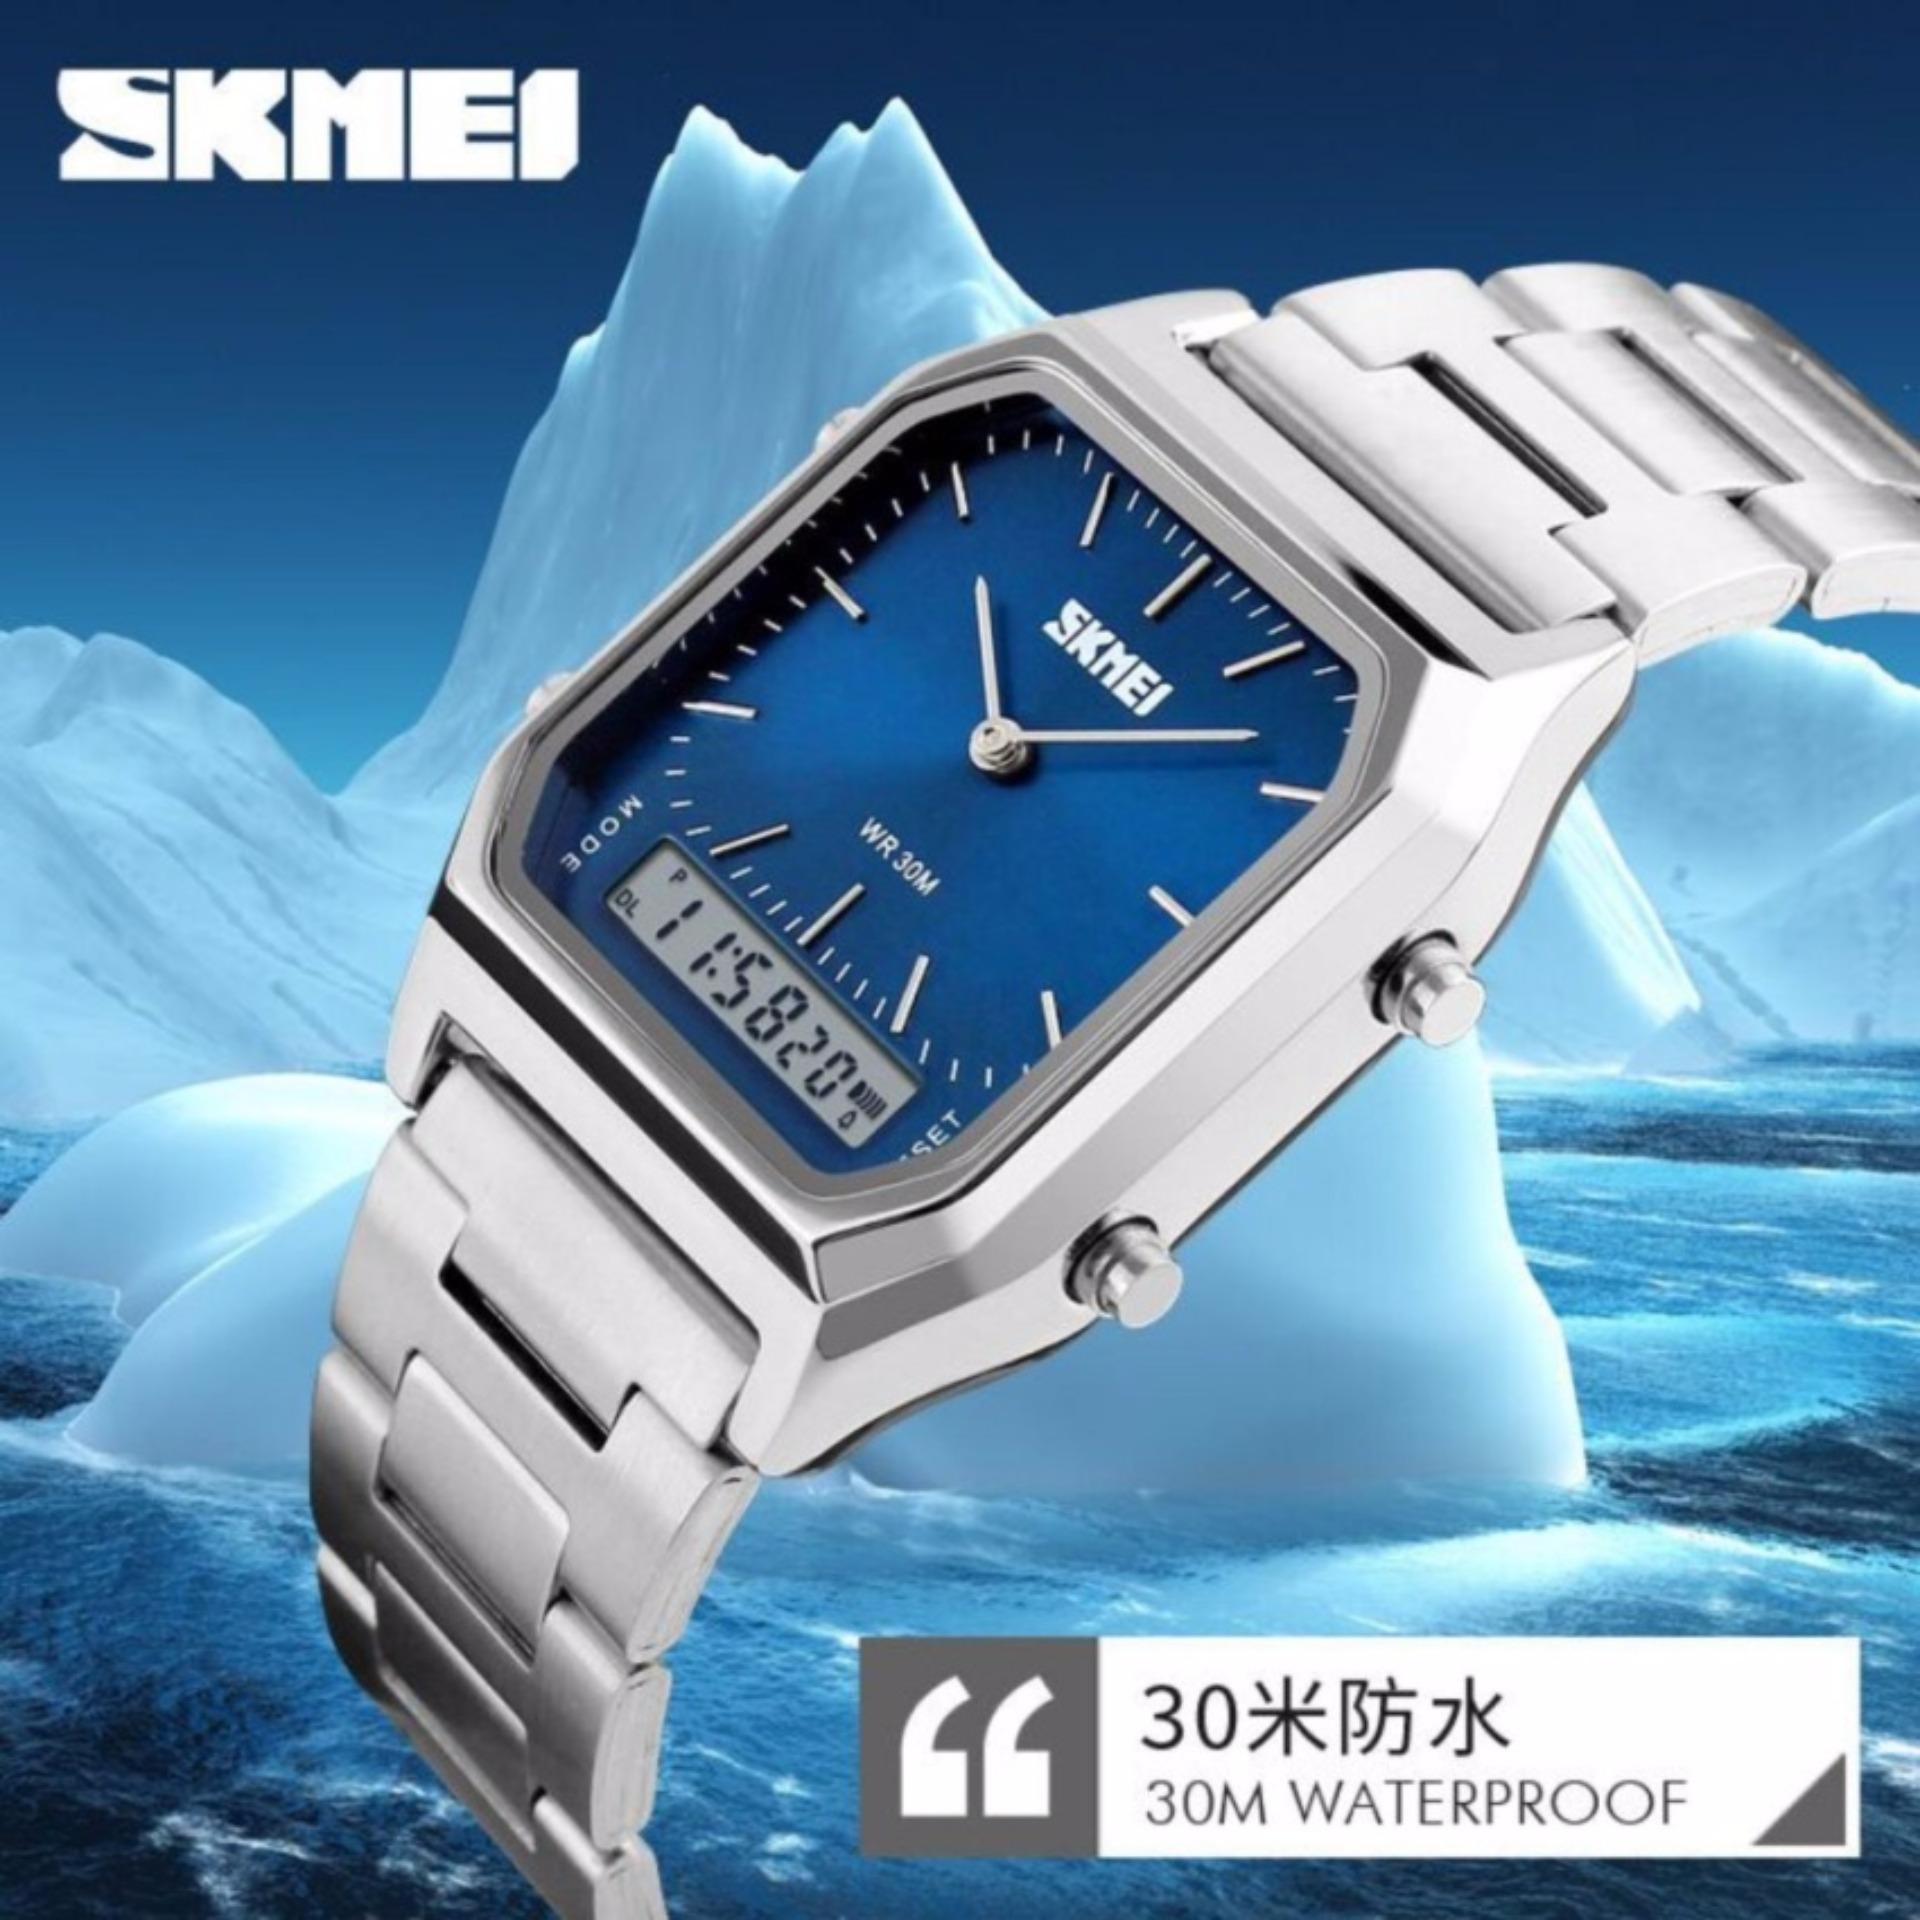 ... Sniper 0989 Hijau Cek. Source · Online Murah Skmei Men Sport Quartz Watch Water Resistant Anti Air 9149 Jam Tangan Pria Casual